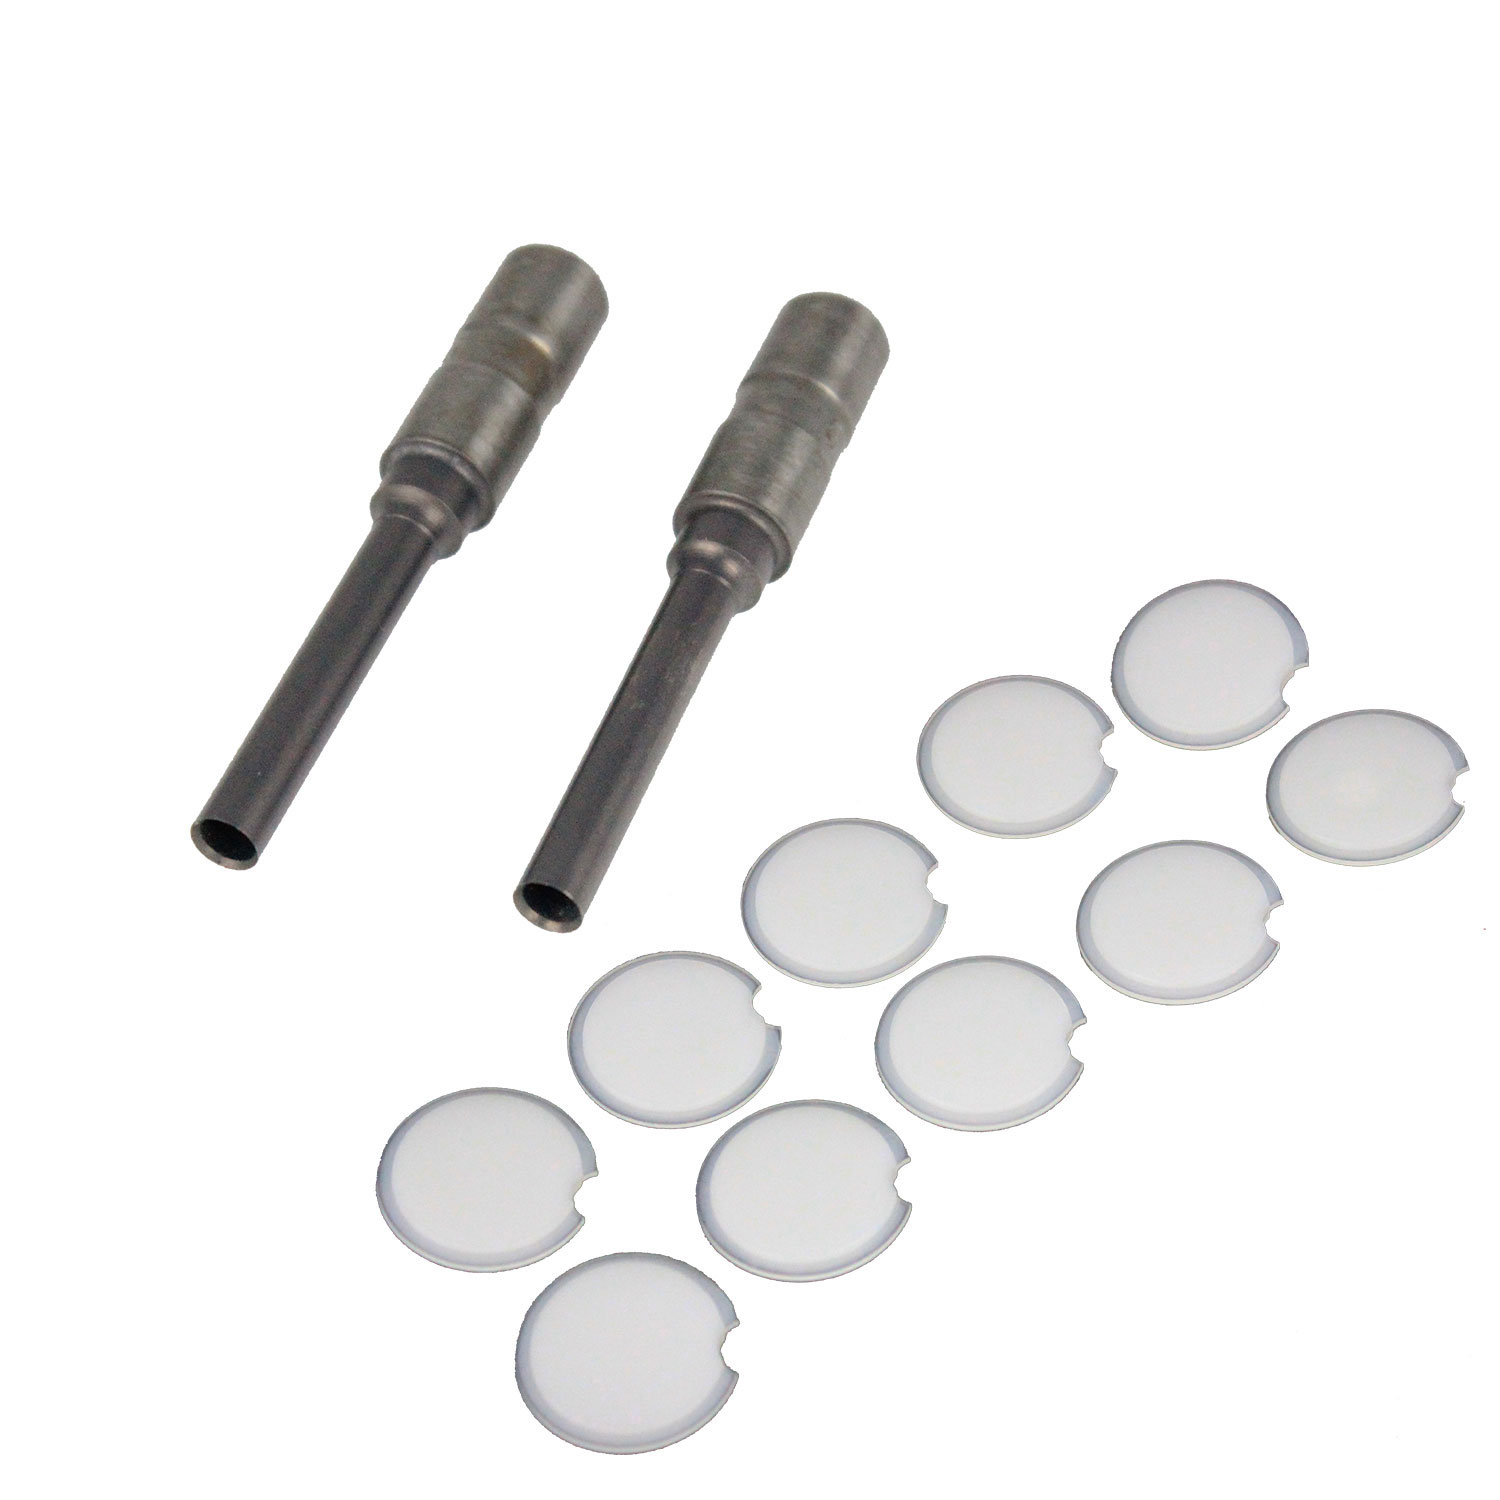 IDEAL 8570 Punch Bits & Disc Package Set